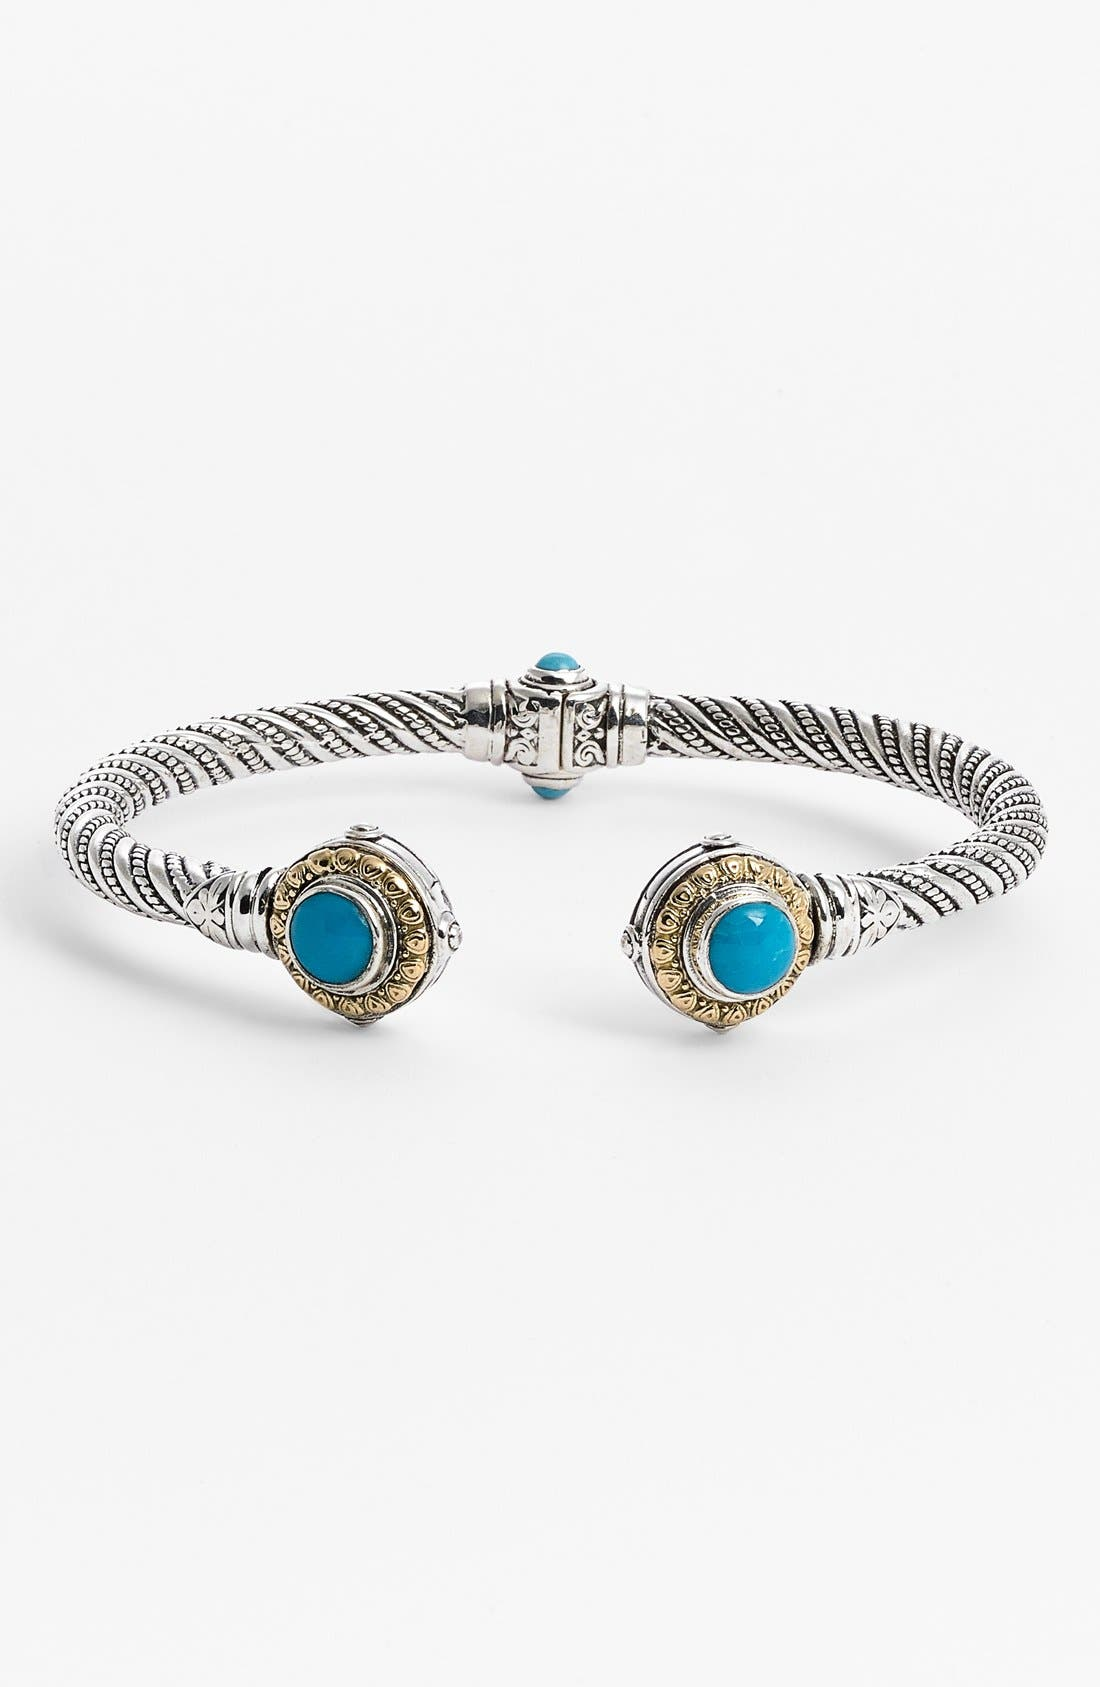 'Hermione' Hinged Cuff,                         Main,                         color, SILVER/ TURQUOISE